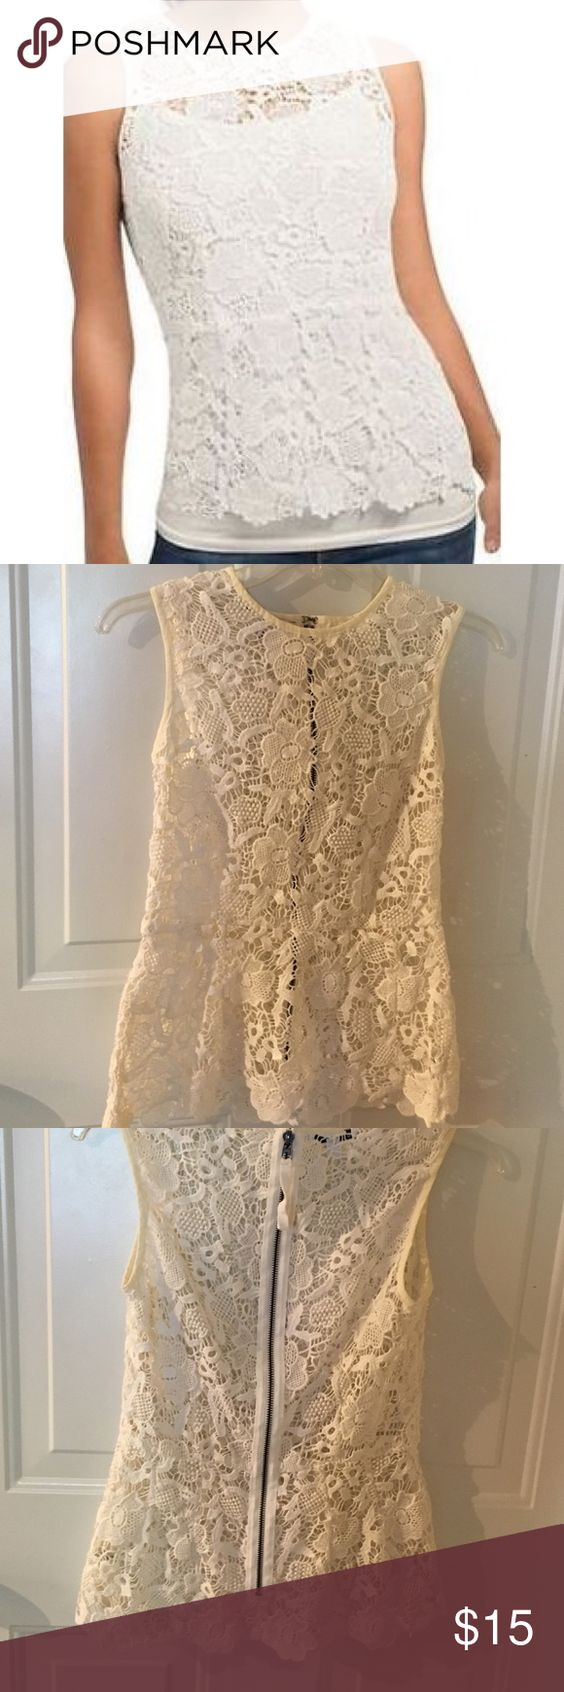 Top Cabi Needle Lace Ivory Peplum Shell Blouse Top. CAbi Tops